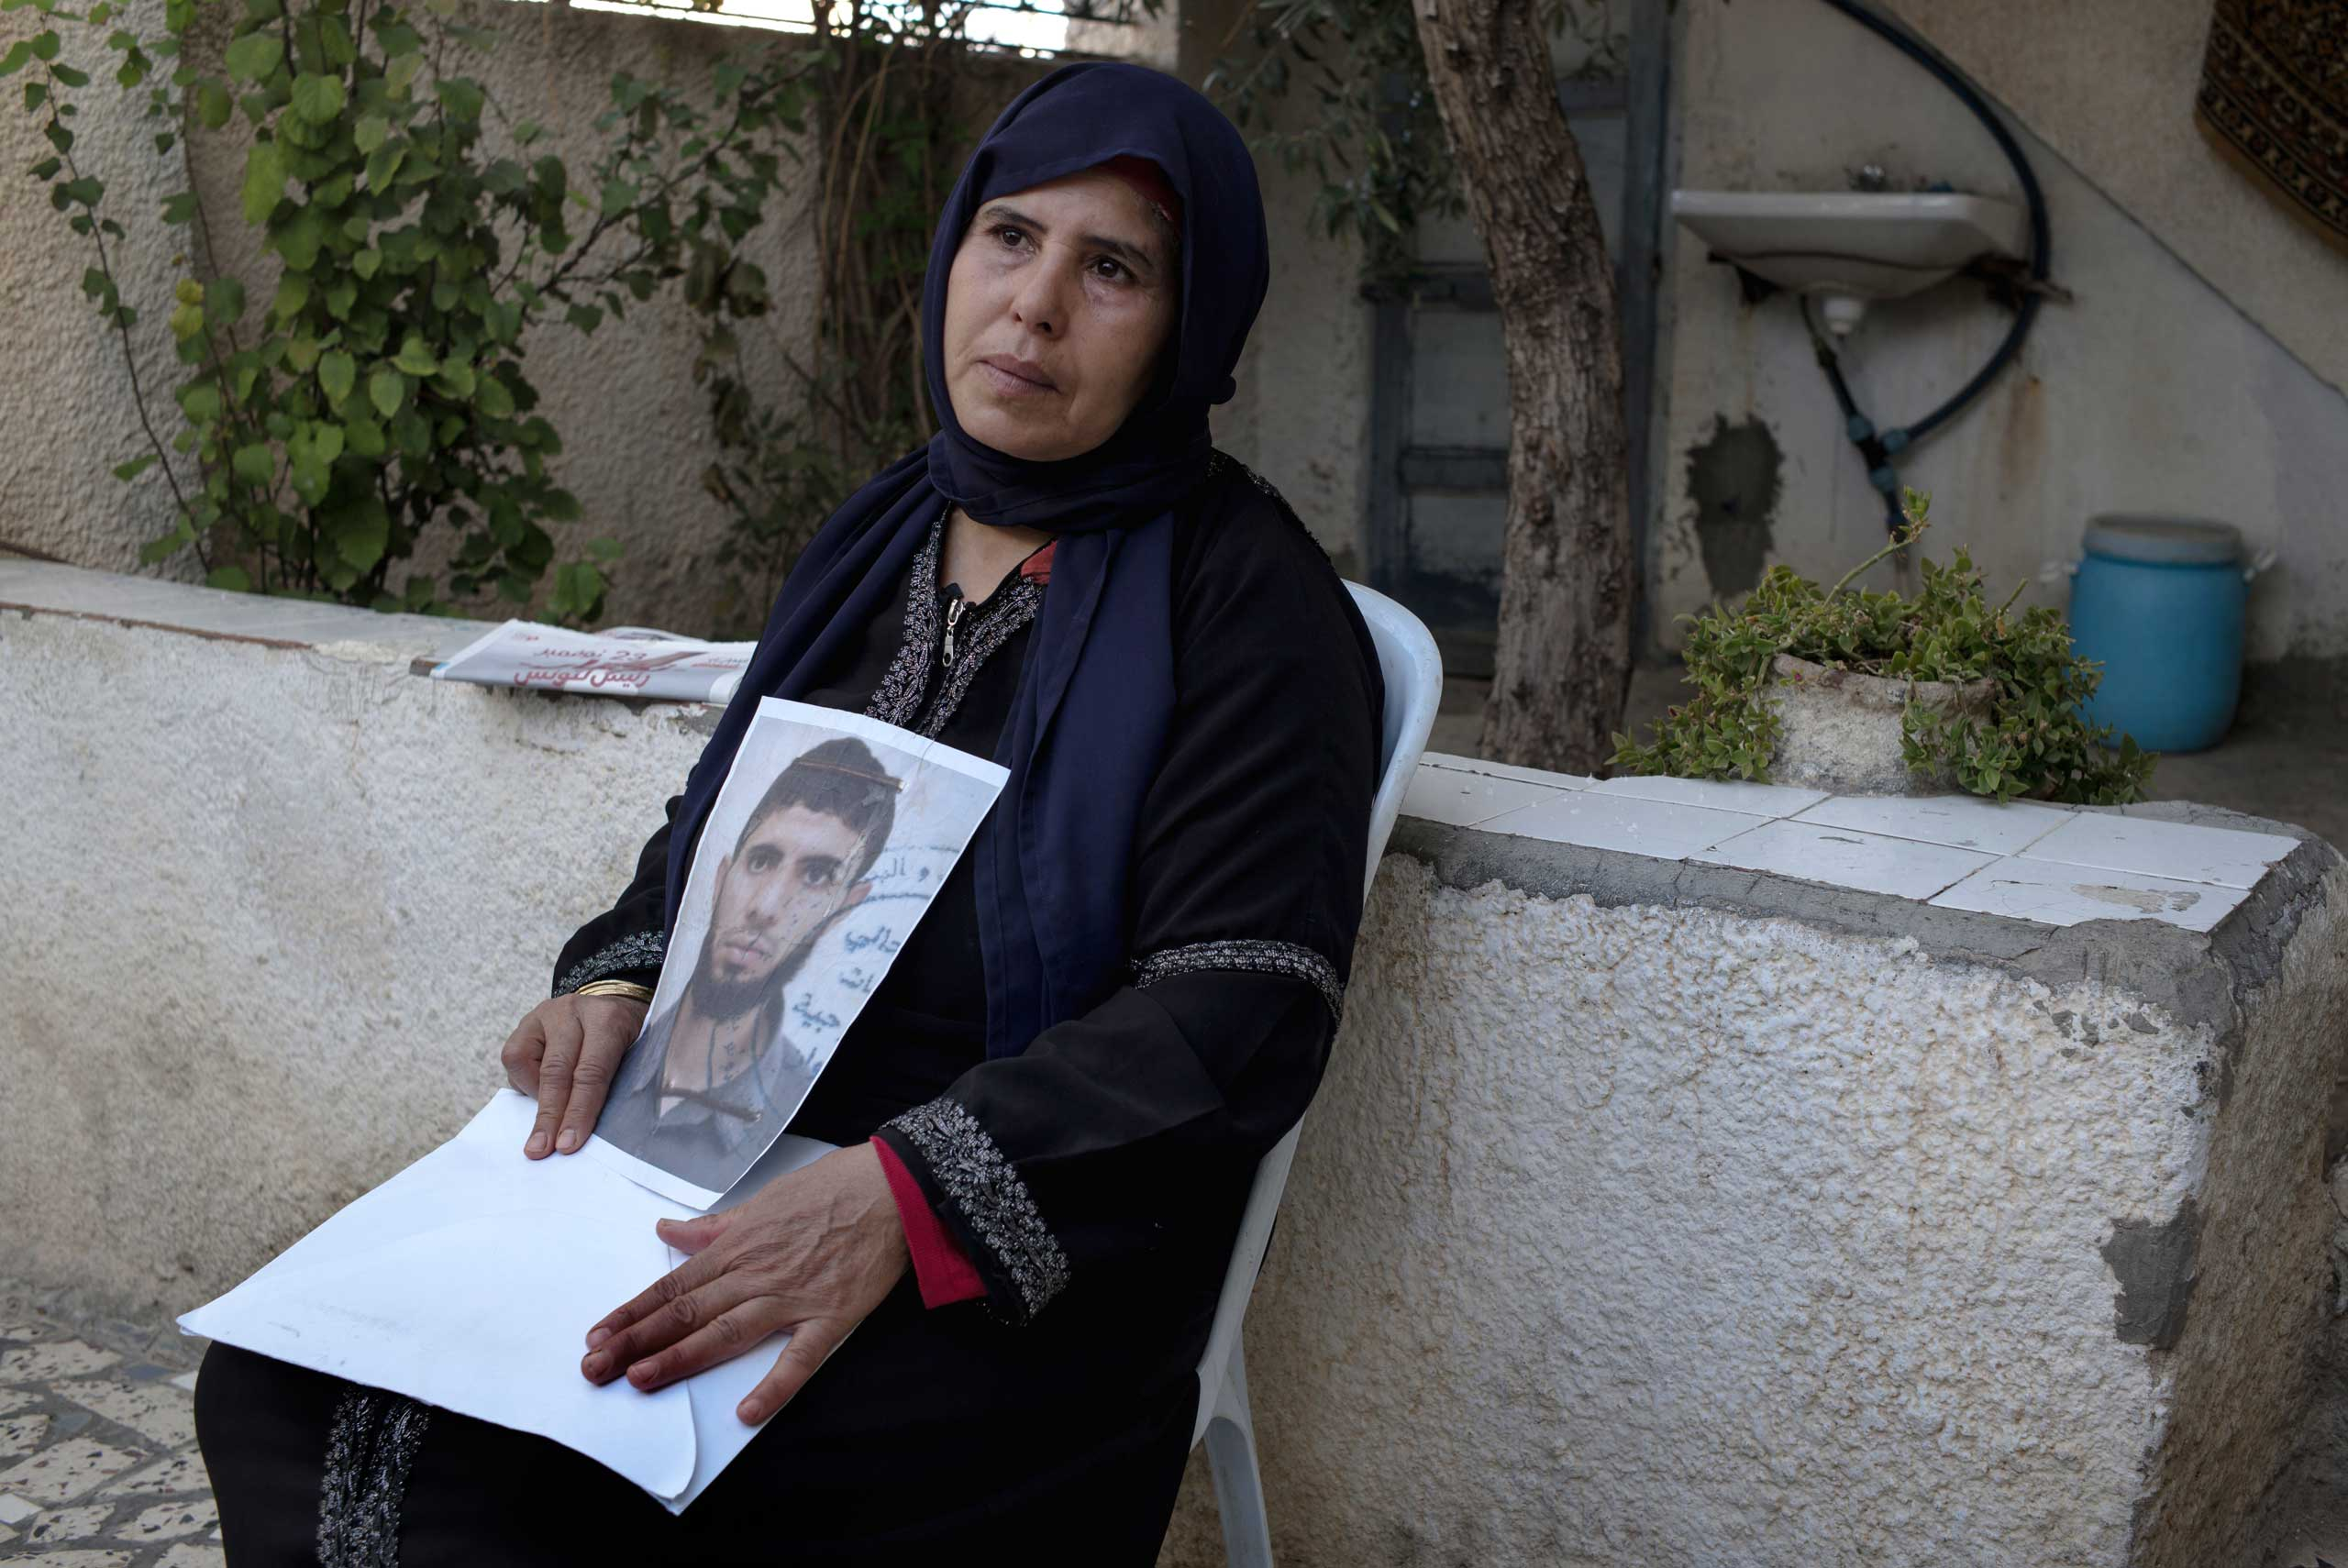 Idoudi Kaabi holds a photo of her son, Bilel, who left their small hilltop town of Oueslatia with four friends on Sept. 16. Bilel, a 23-year-old business management graduate, told his mother he was going to the funeral of a friend's father in a nearby town, but actually headed south to train in a jihadist camp in neighboring Libya. On Oct. 18, the Kaabi family received news that Bilel had killed himself and at least 20 others in a suicide attack in the Libyan city of Benghazi.